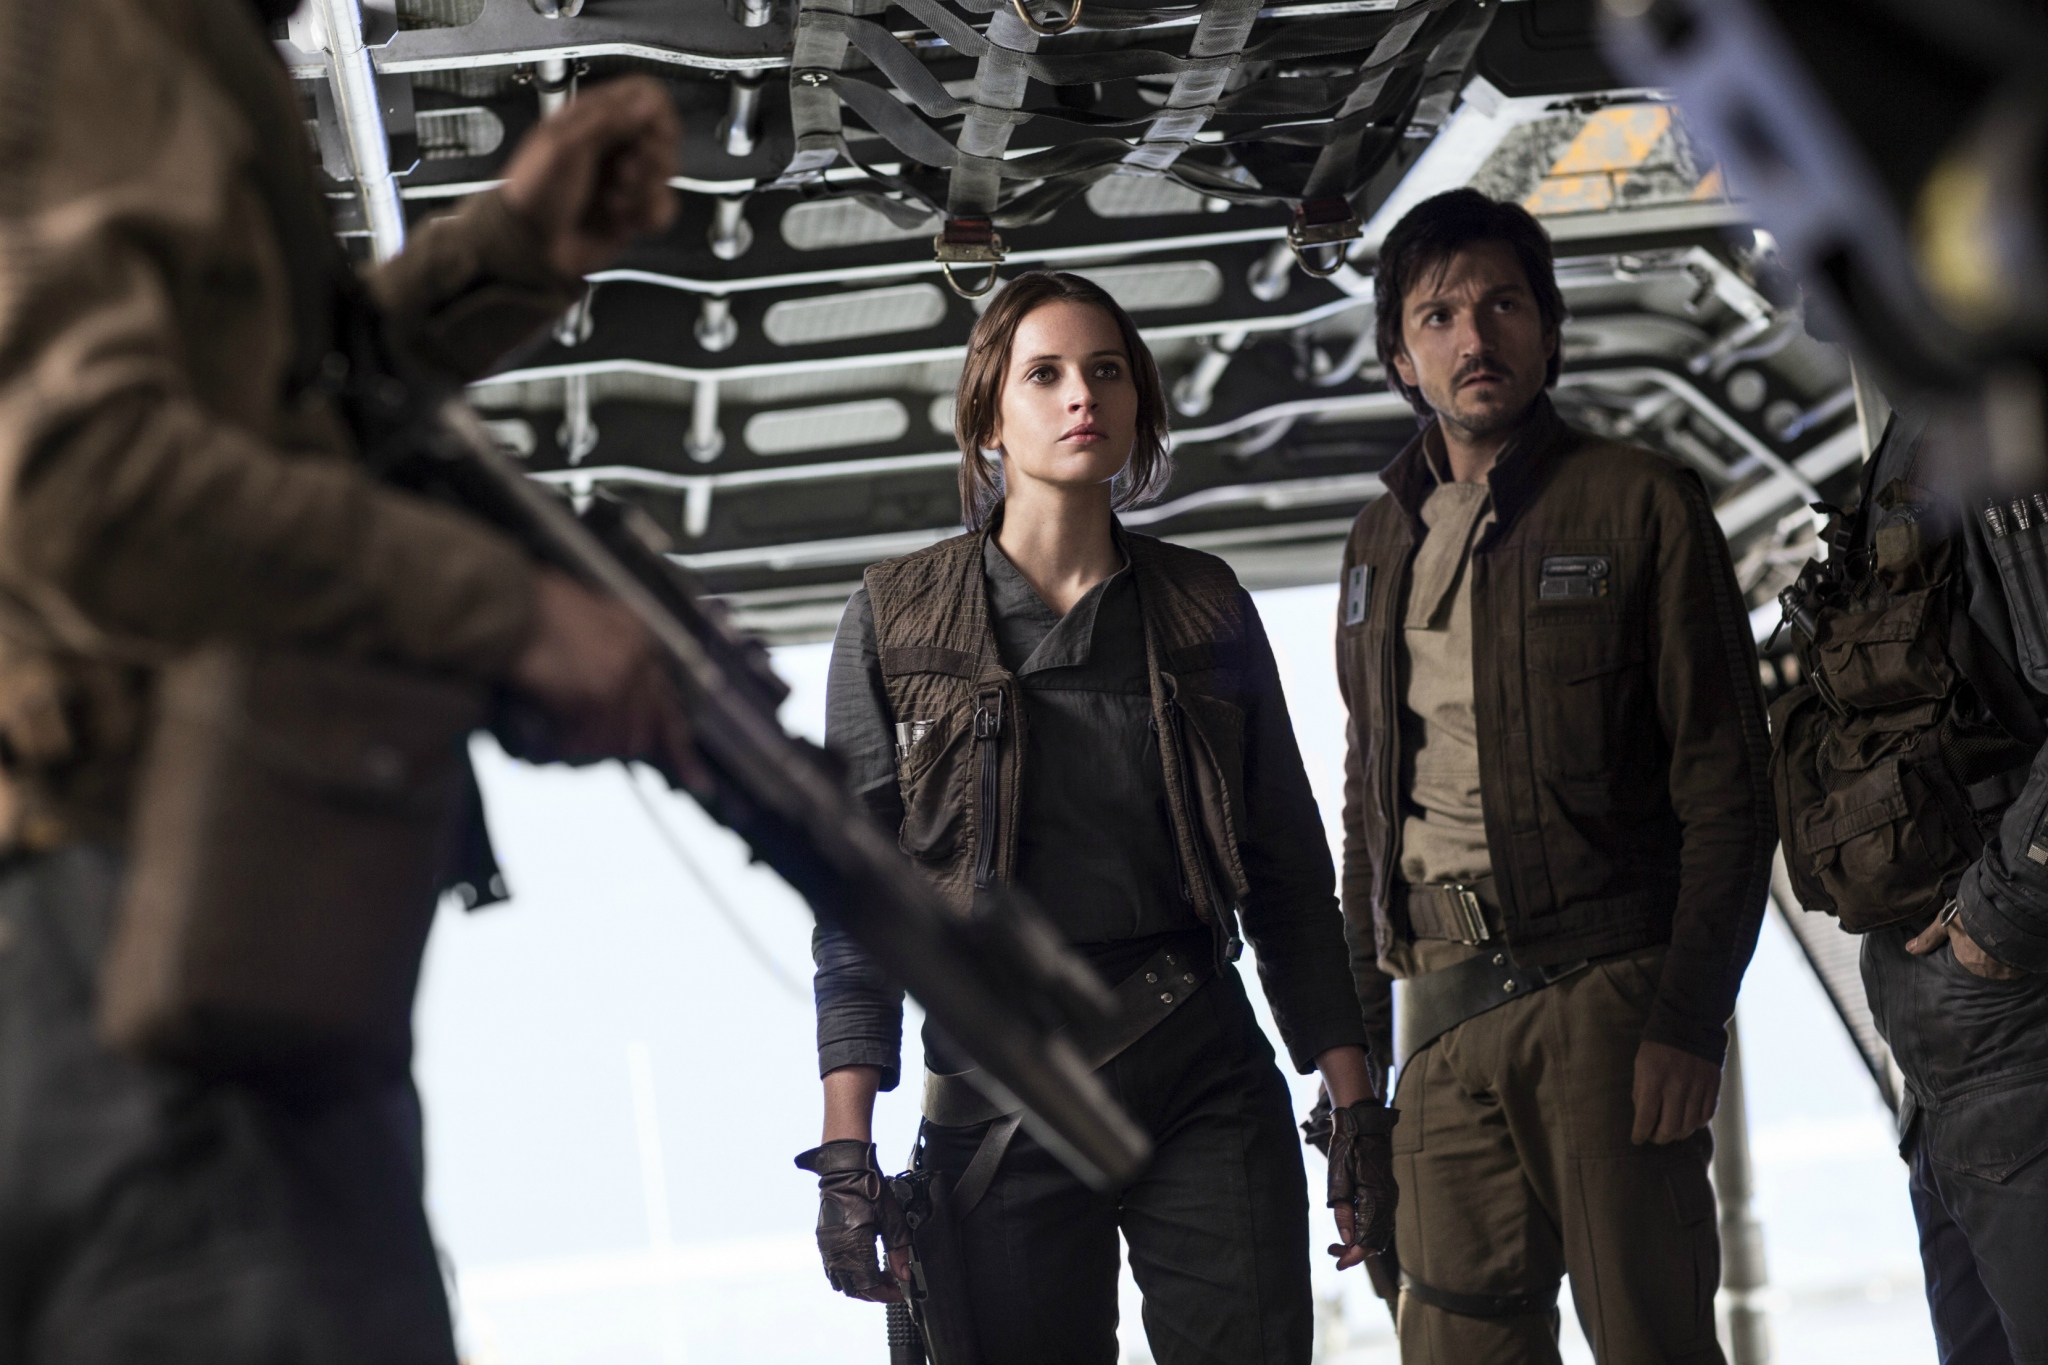 Rogue One Cast To Appear Exclusively On Jimmy Kimmel Live